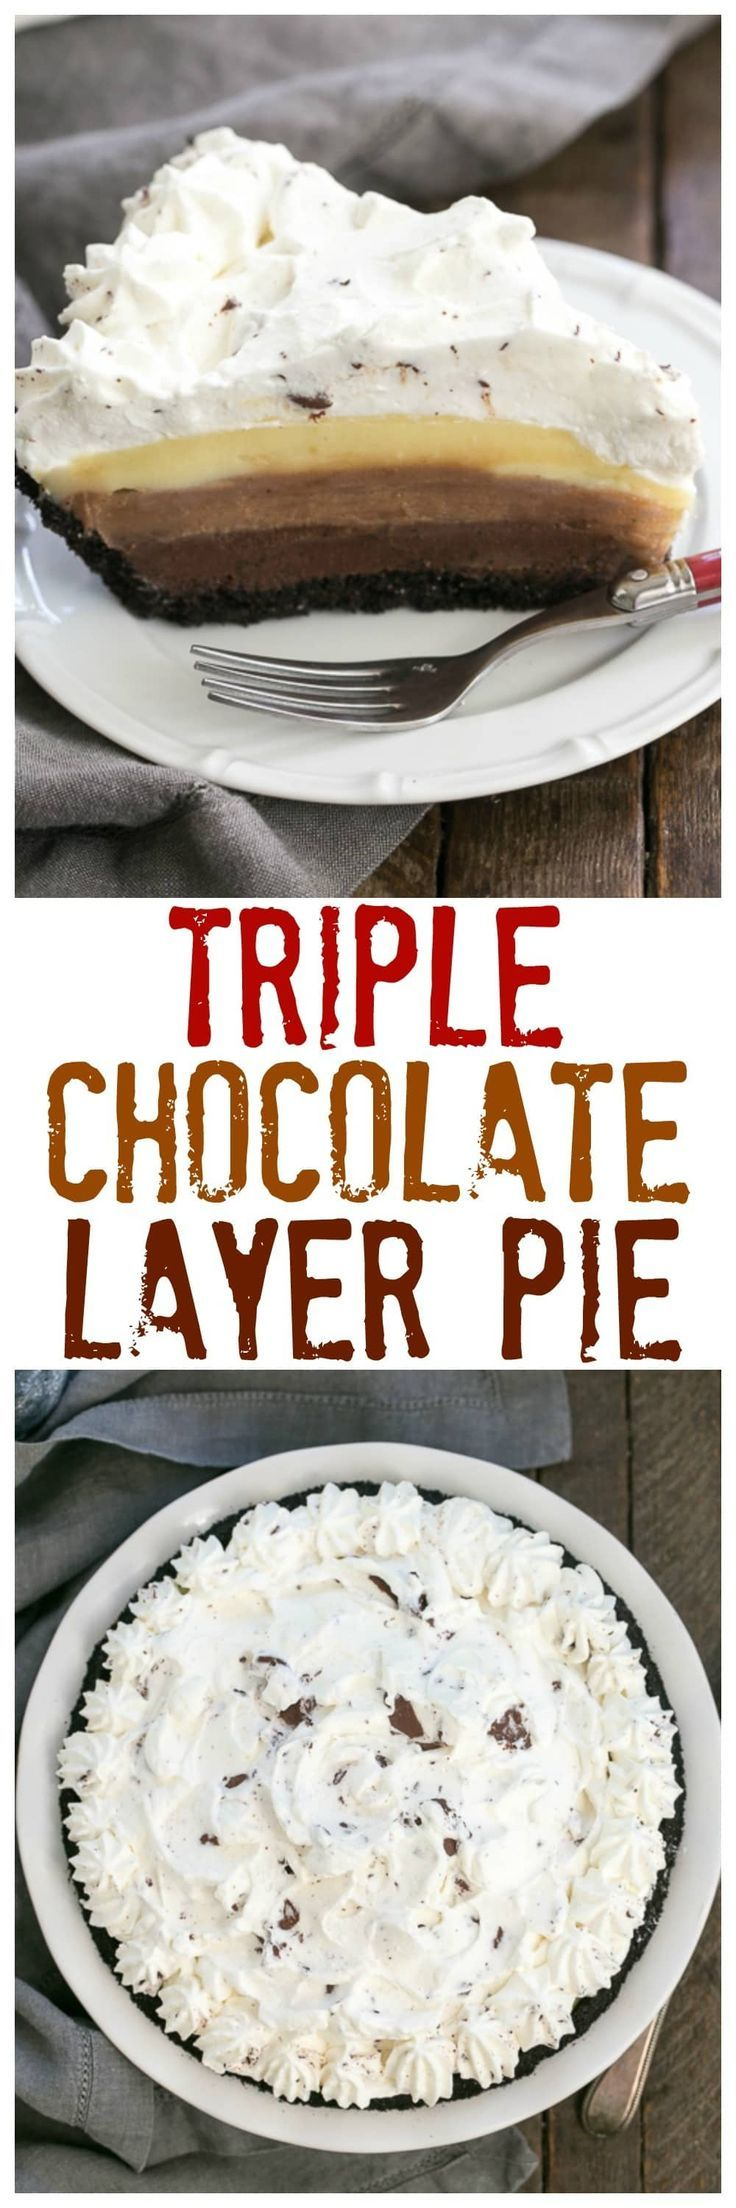 Triple Chocolate Layer Pie Recipe | Cookie crust, 3 rich custards and a cloud of whipped cream! @lizzydo